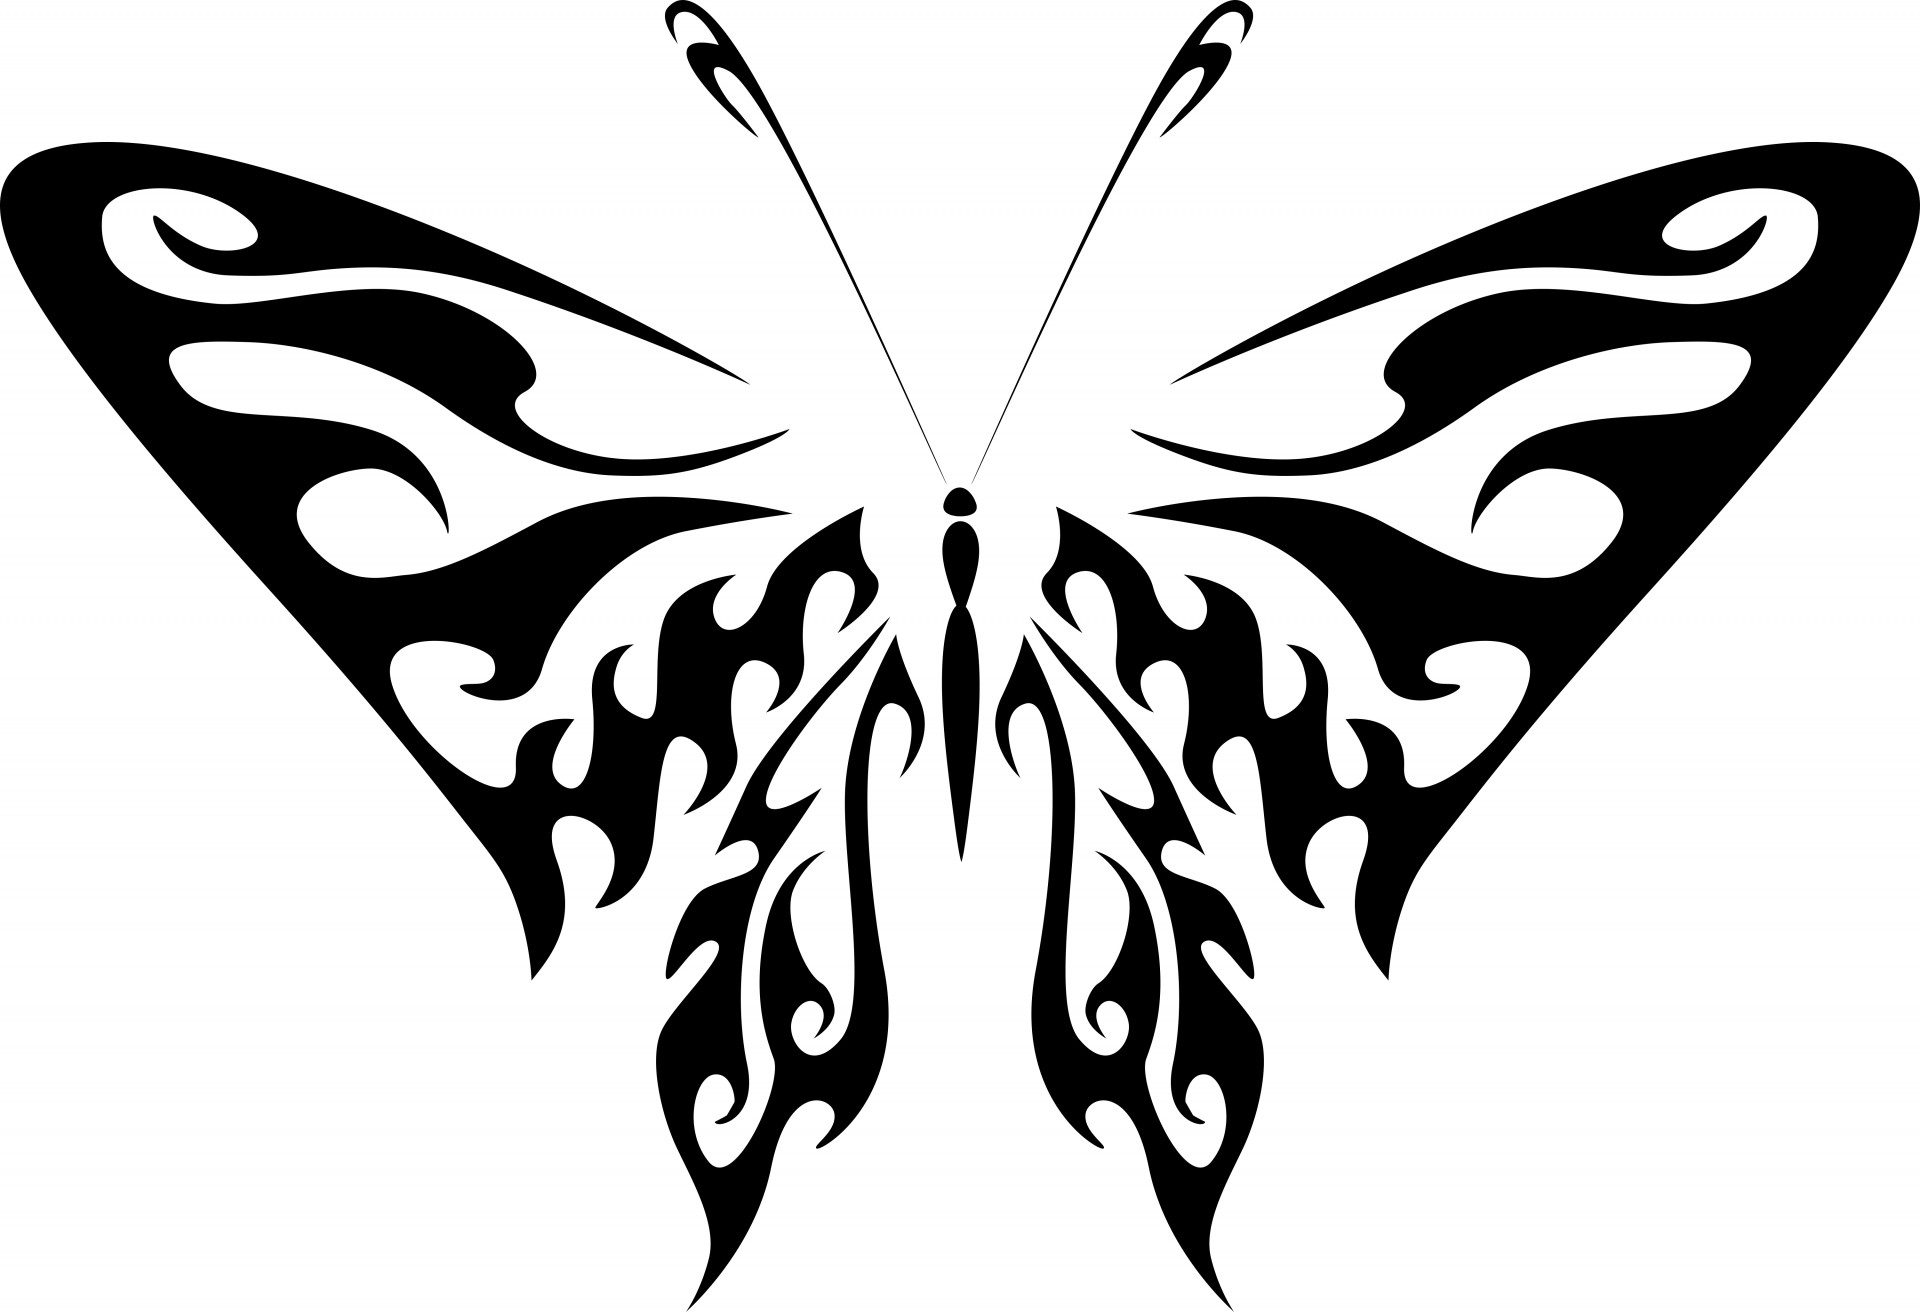 1920x1312 Silhouette Of A Butterfly Free Stock Photo